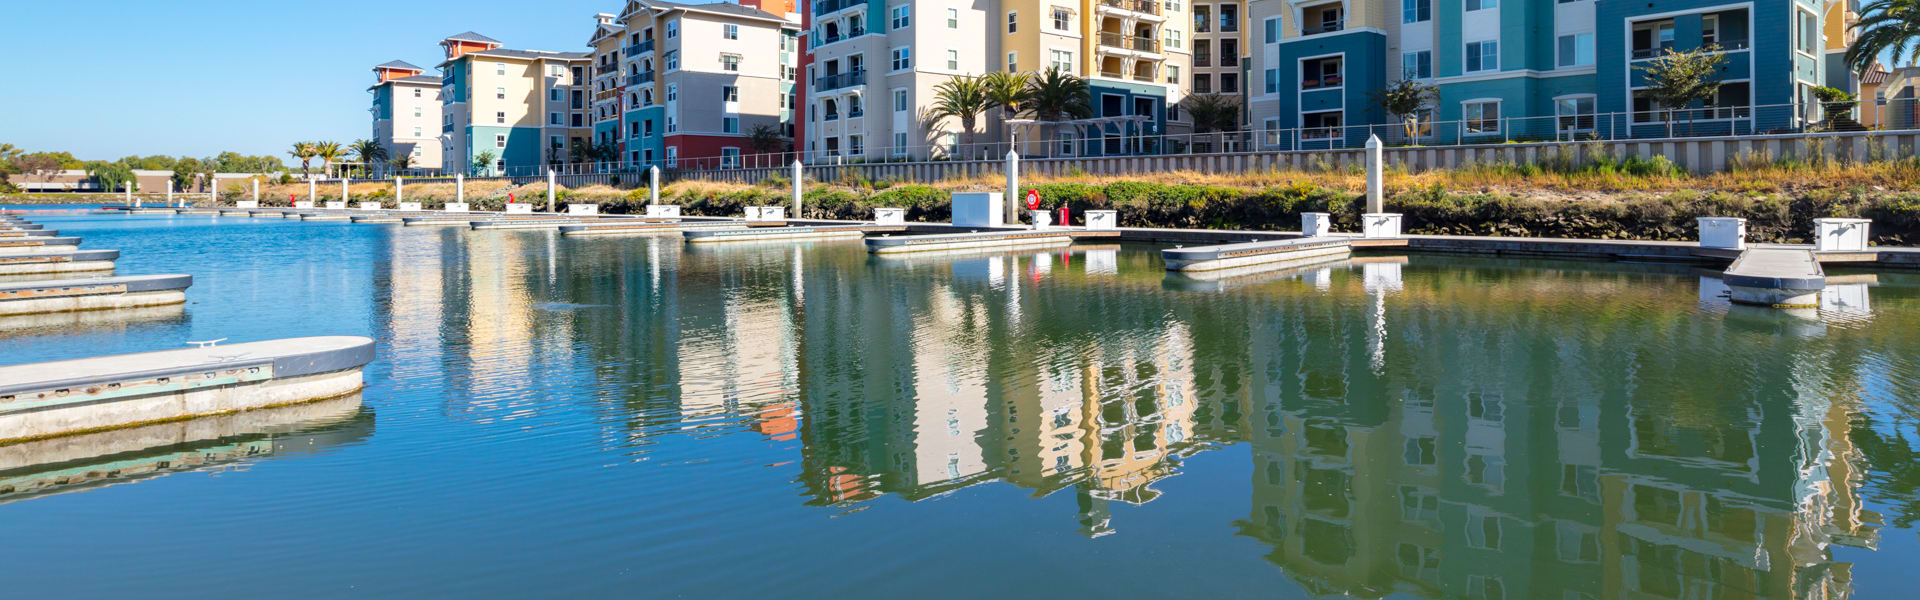 Apartments Available on Rent at Blu Harbor by Windsor, CA, 94063